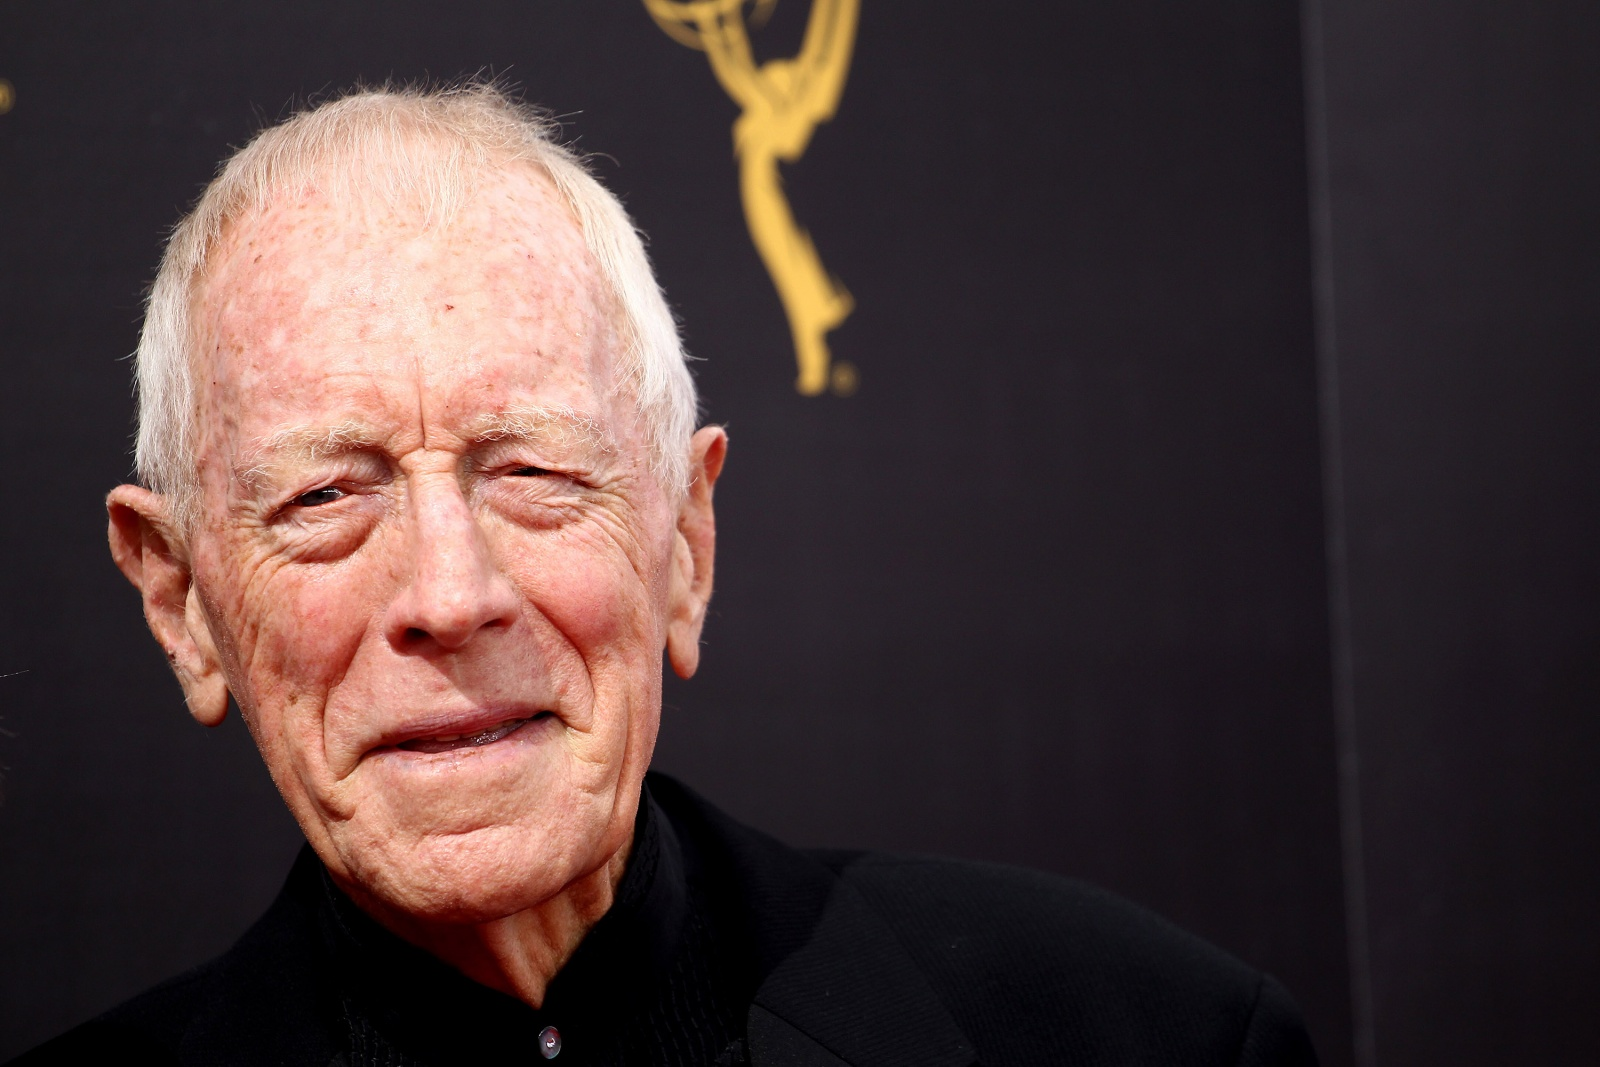 LOS ANGELES, CA - SEPTEMBER 10:  Max von Sydow attends the 2016 Creative Arts Emmy Awards held at Microsoft Theater on September 10, 2016 in Los Angeles, California.  (Photo by Tommaso Boddi/WireImage)